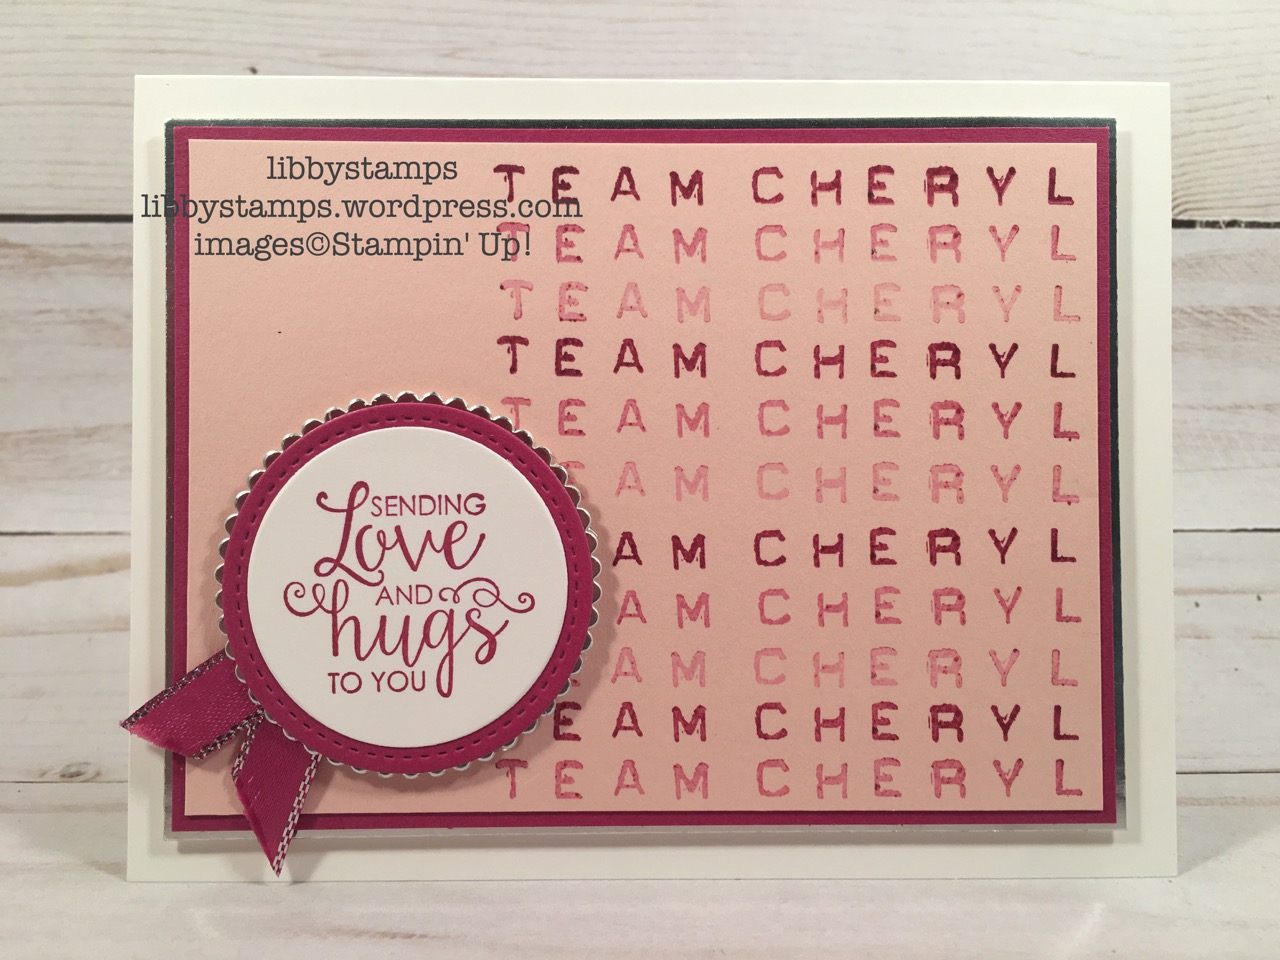 libbystamps, stampin up, Labeler Alphabet, Ribbon of Courage, Layering Circles Framelits, Stitched Shapes Framelits, Berry Burst Metallic Edge Ribbon